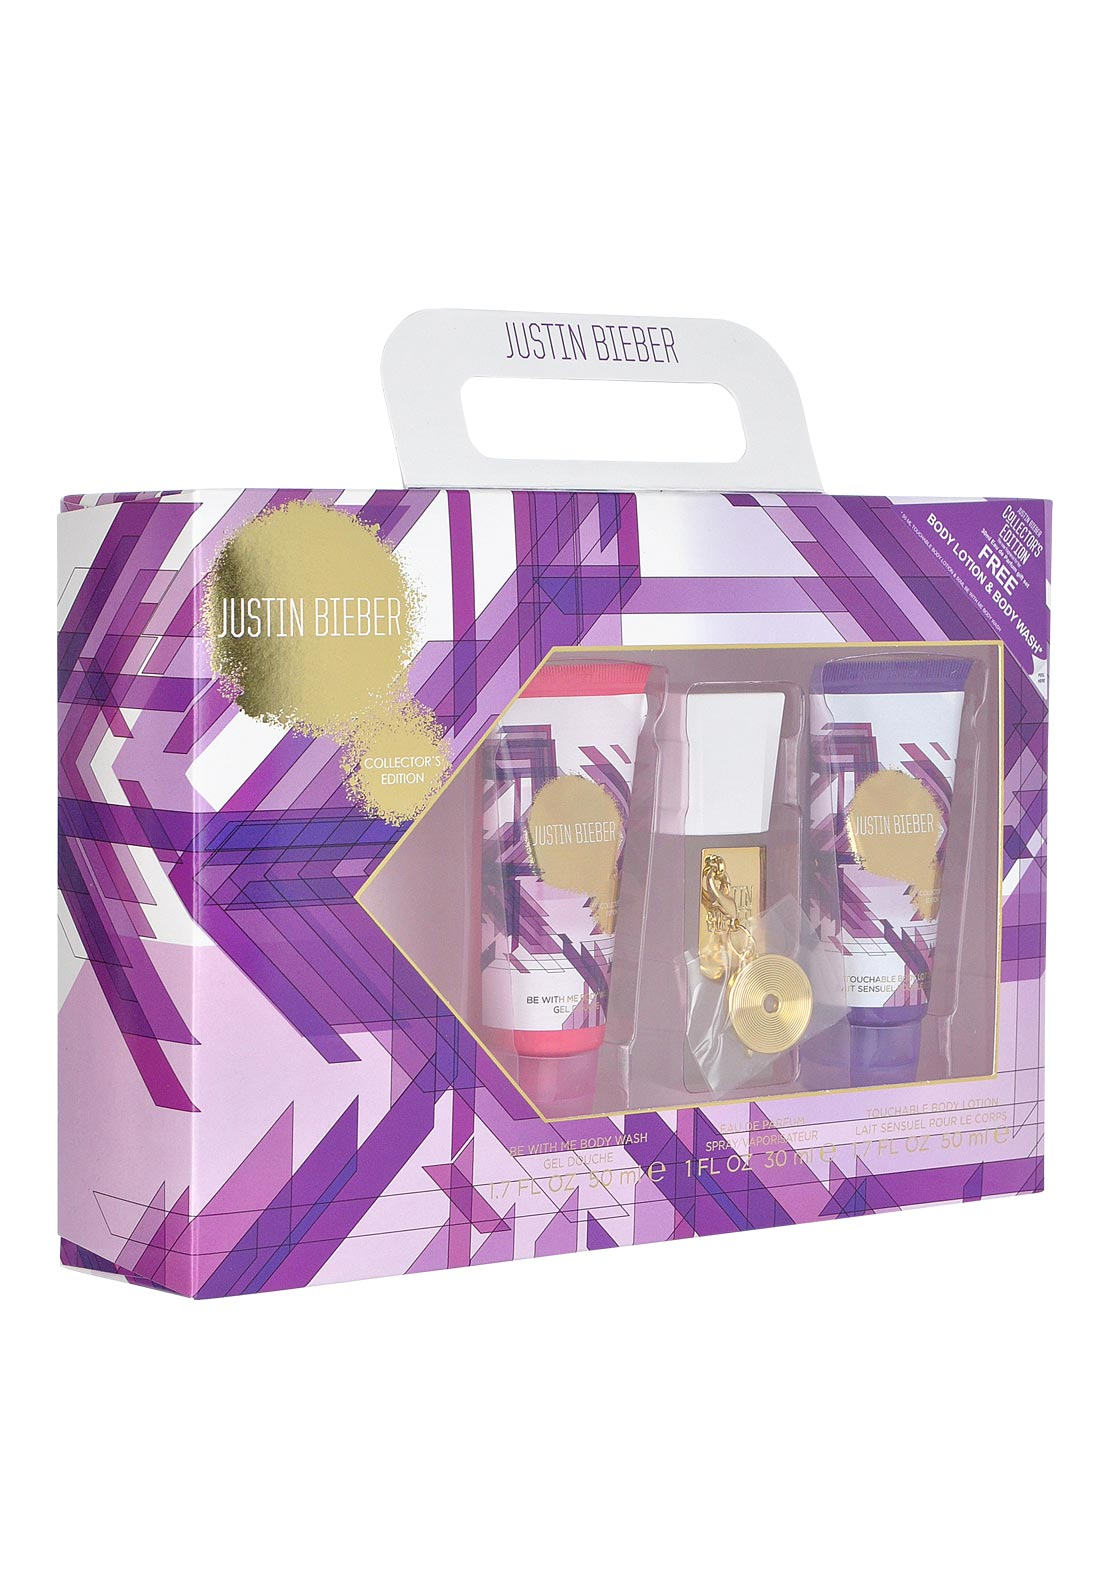 Justin Bieber Be With Me Eau De Parfum Gift Set for Women, 30ml